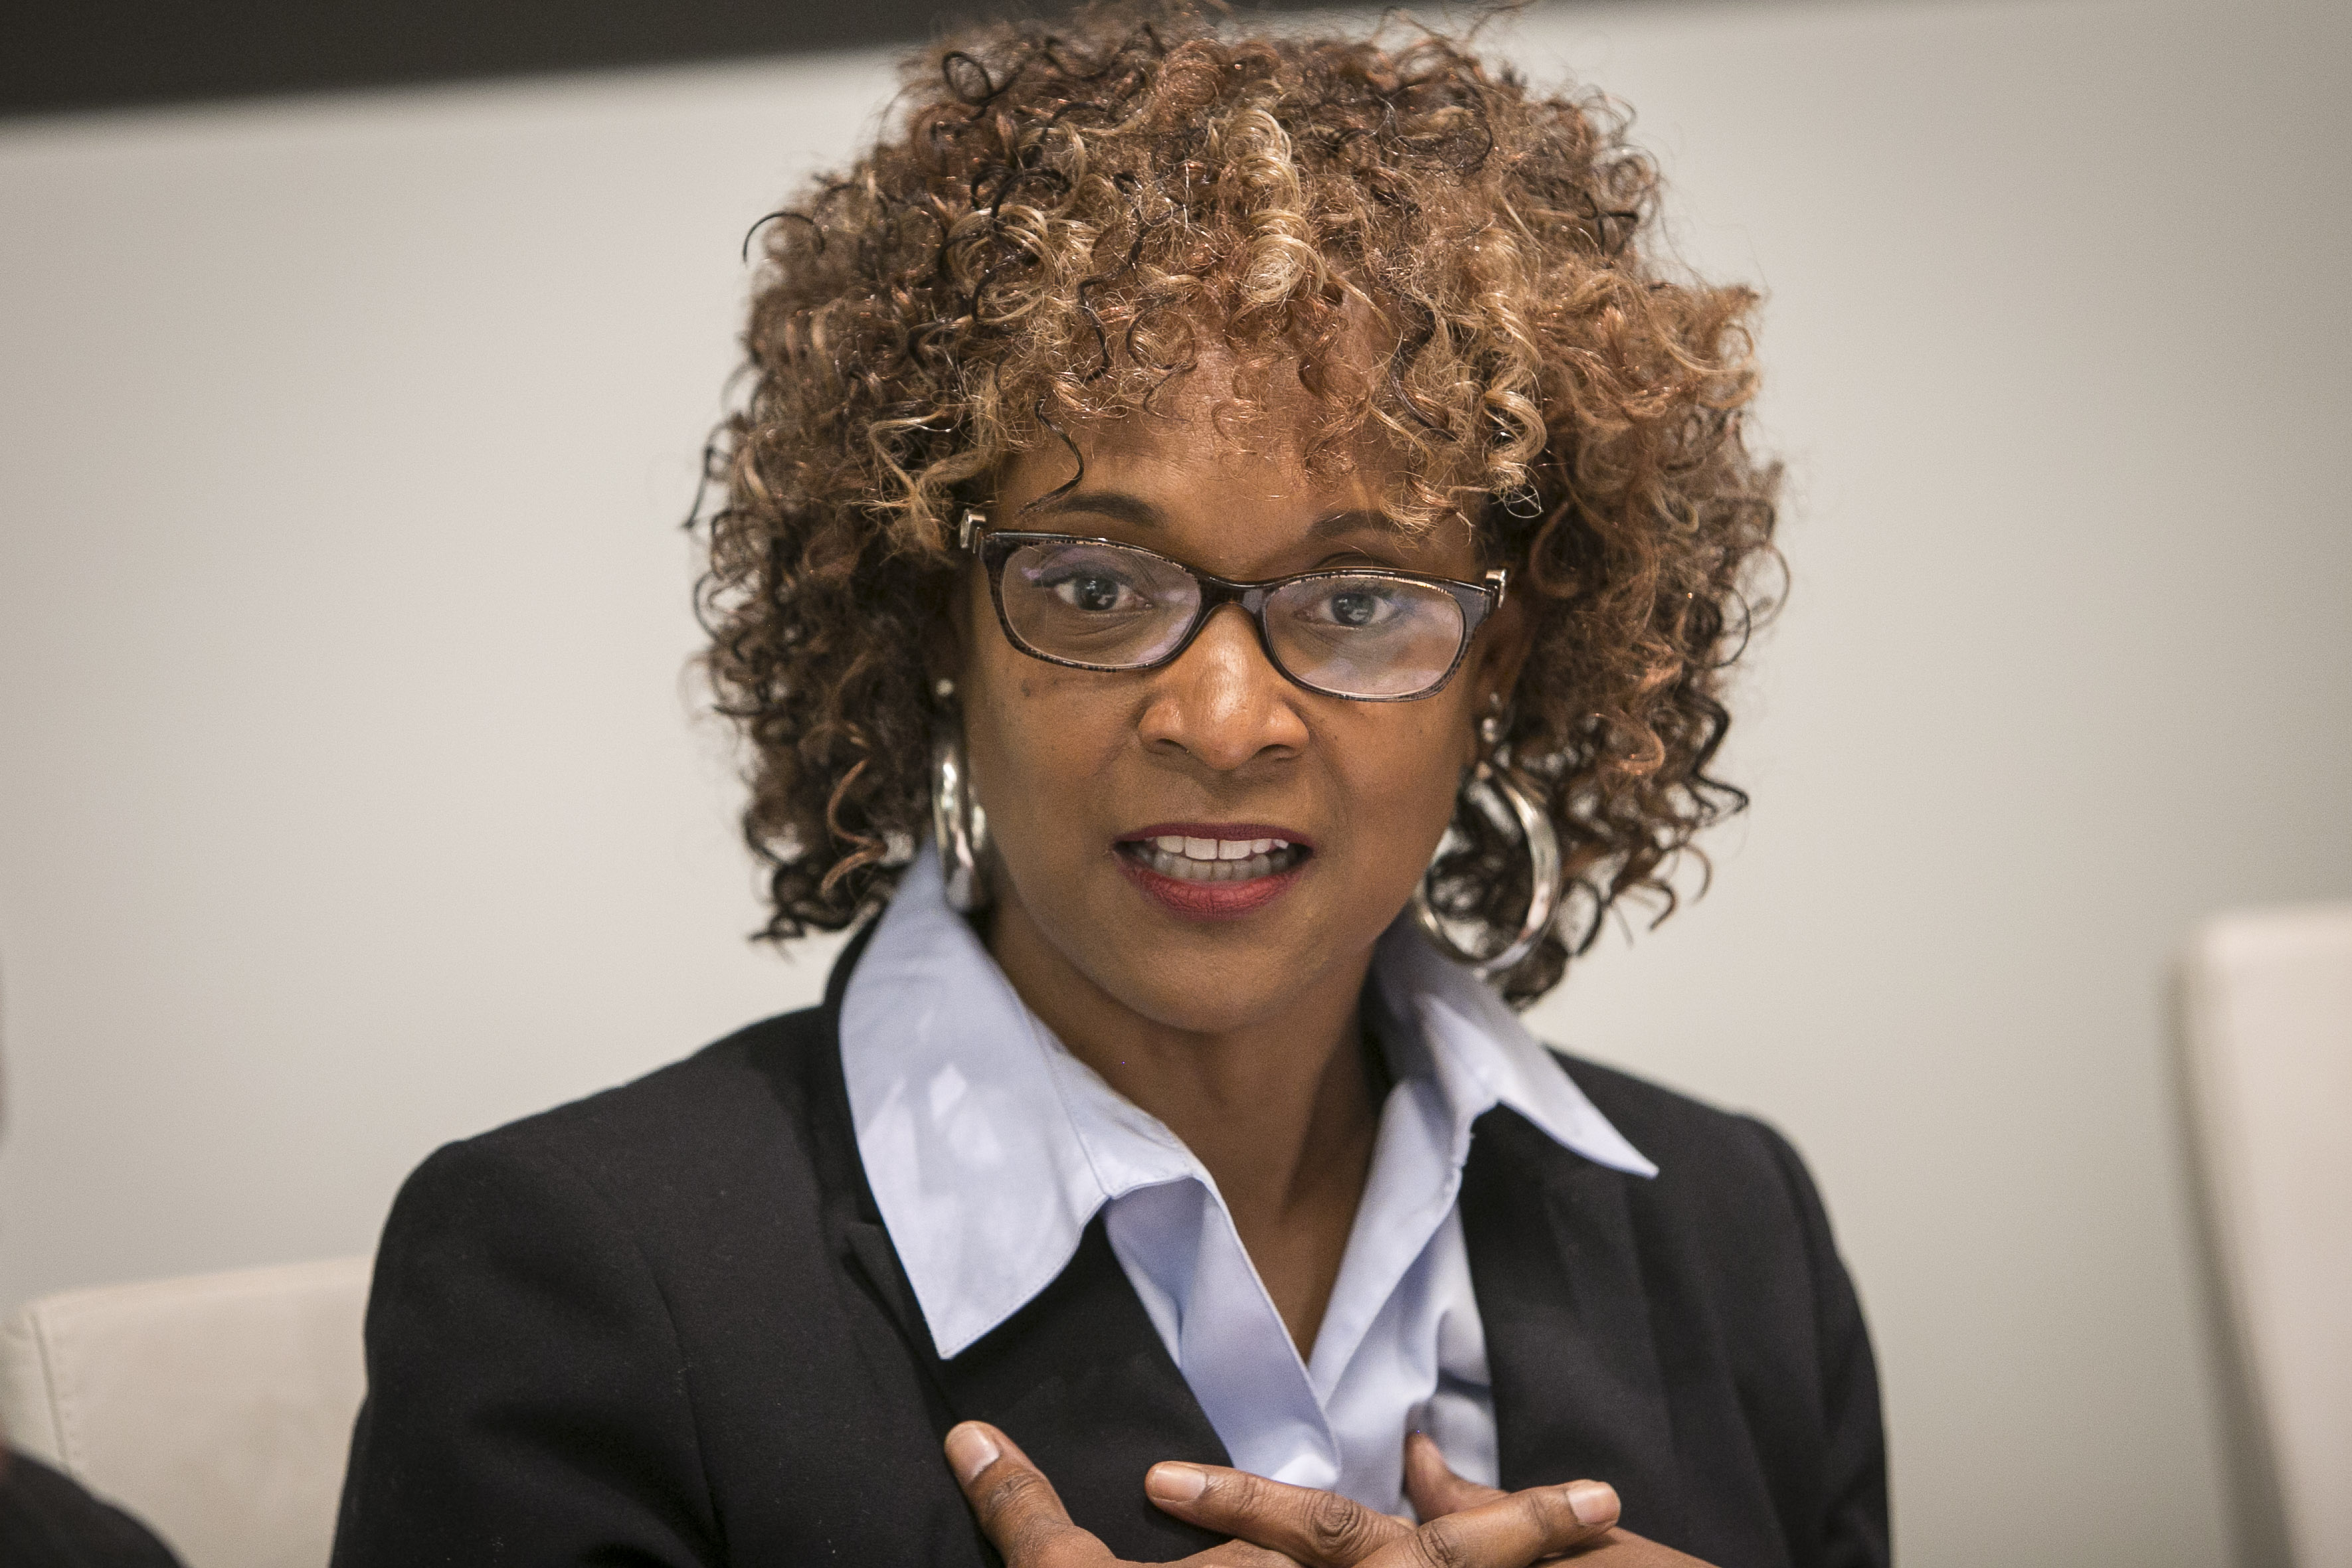 Camille Y. Lilly, Illinois House 78th District Democratic nominee and incumbent, 2020 election candidate questionnaire